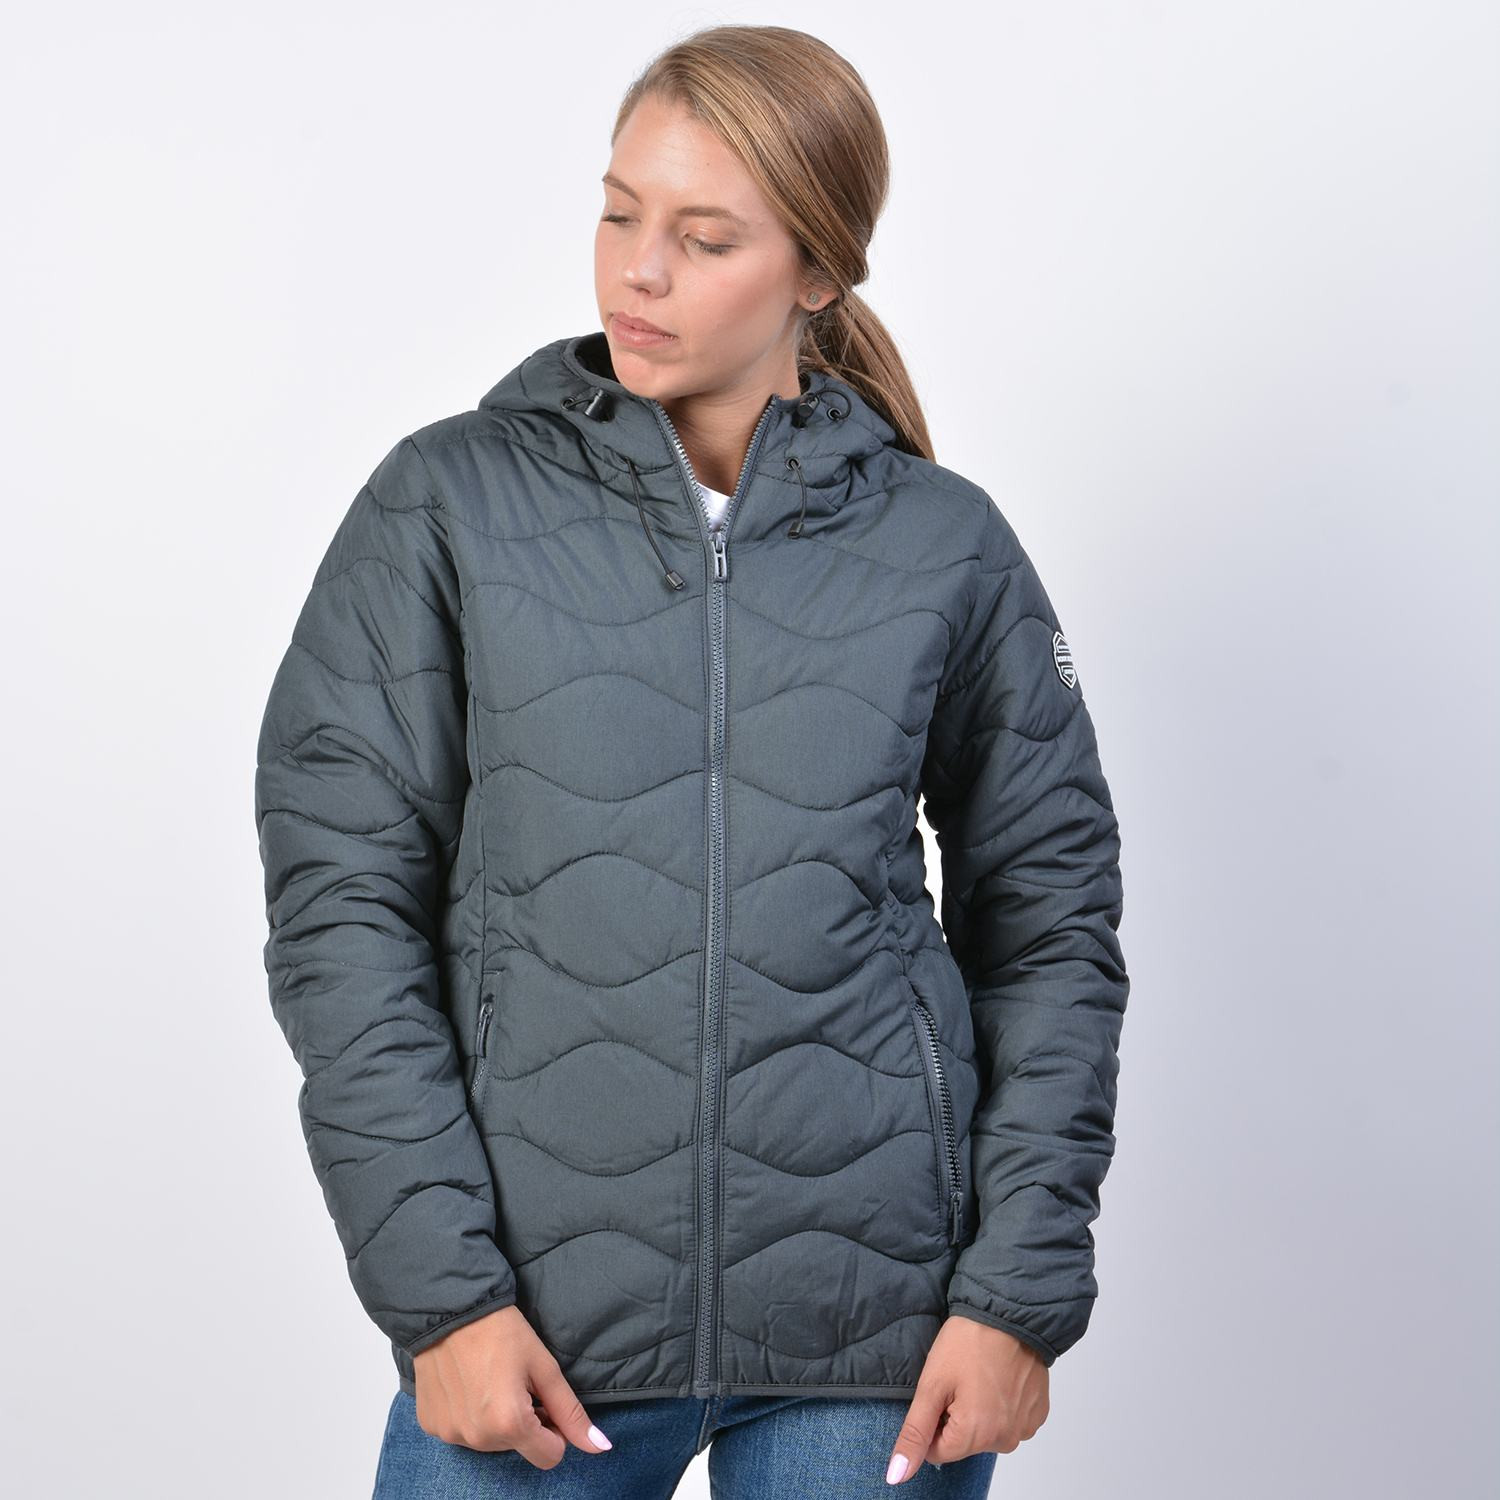 Body Action Women Quilt Padded Jacket With Hood (9000041215_1899)